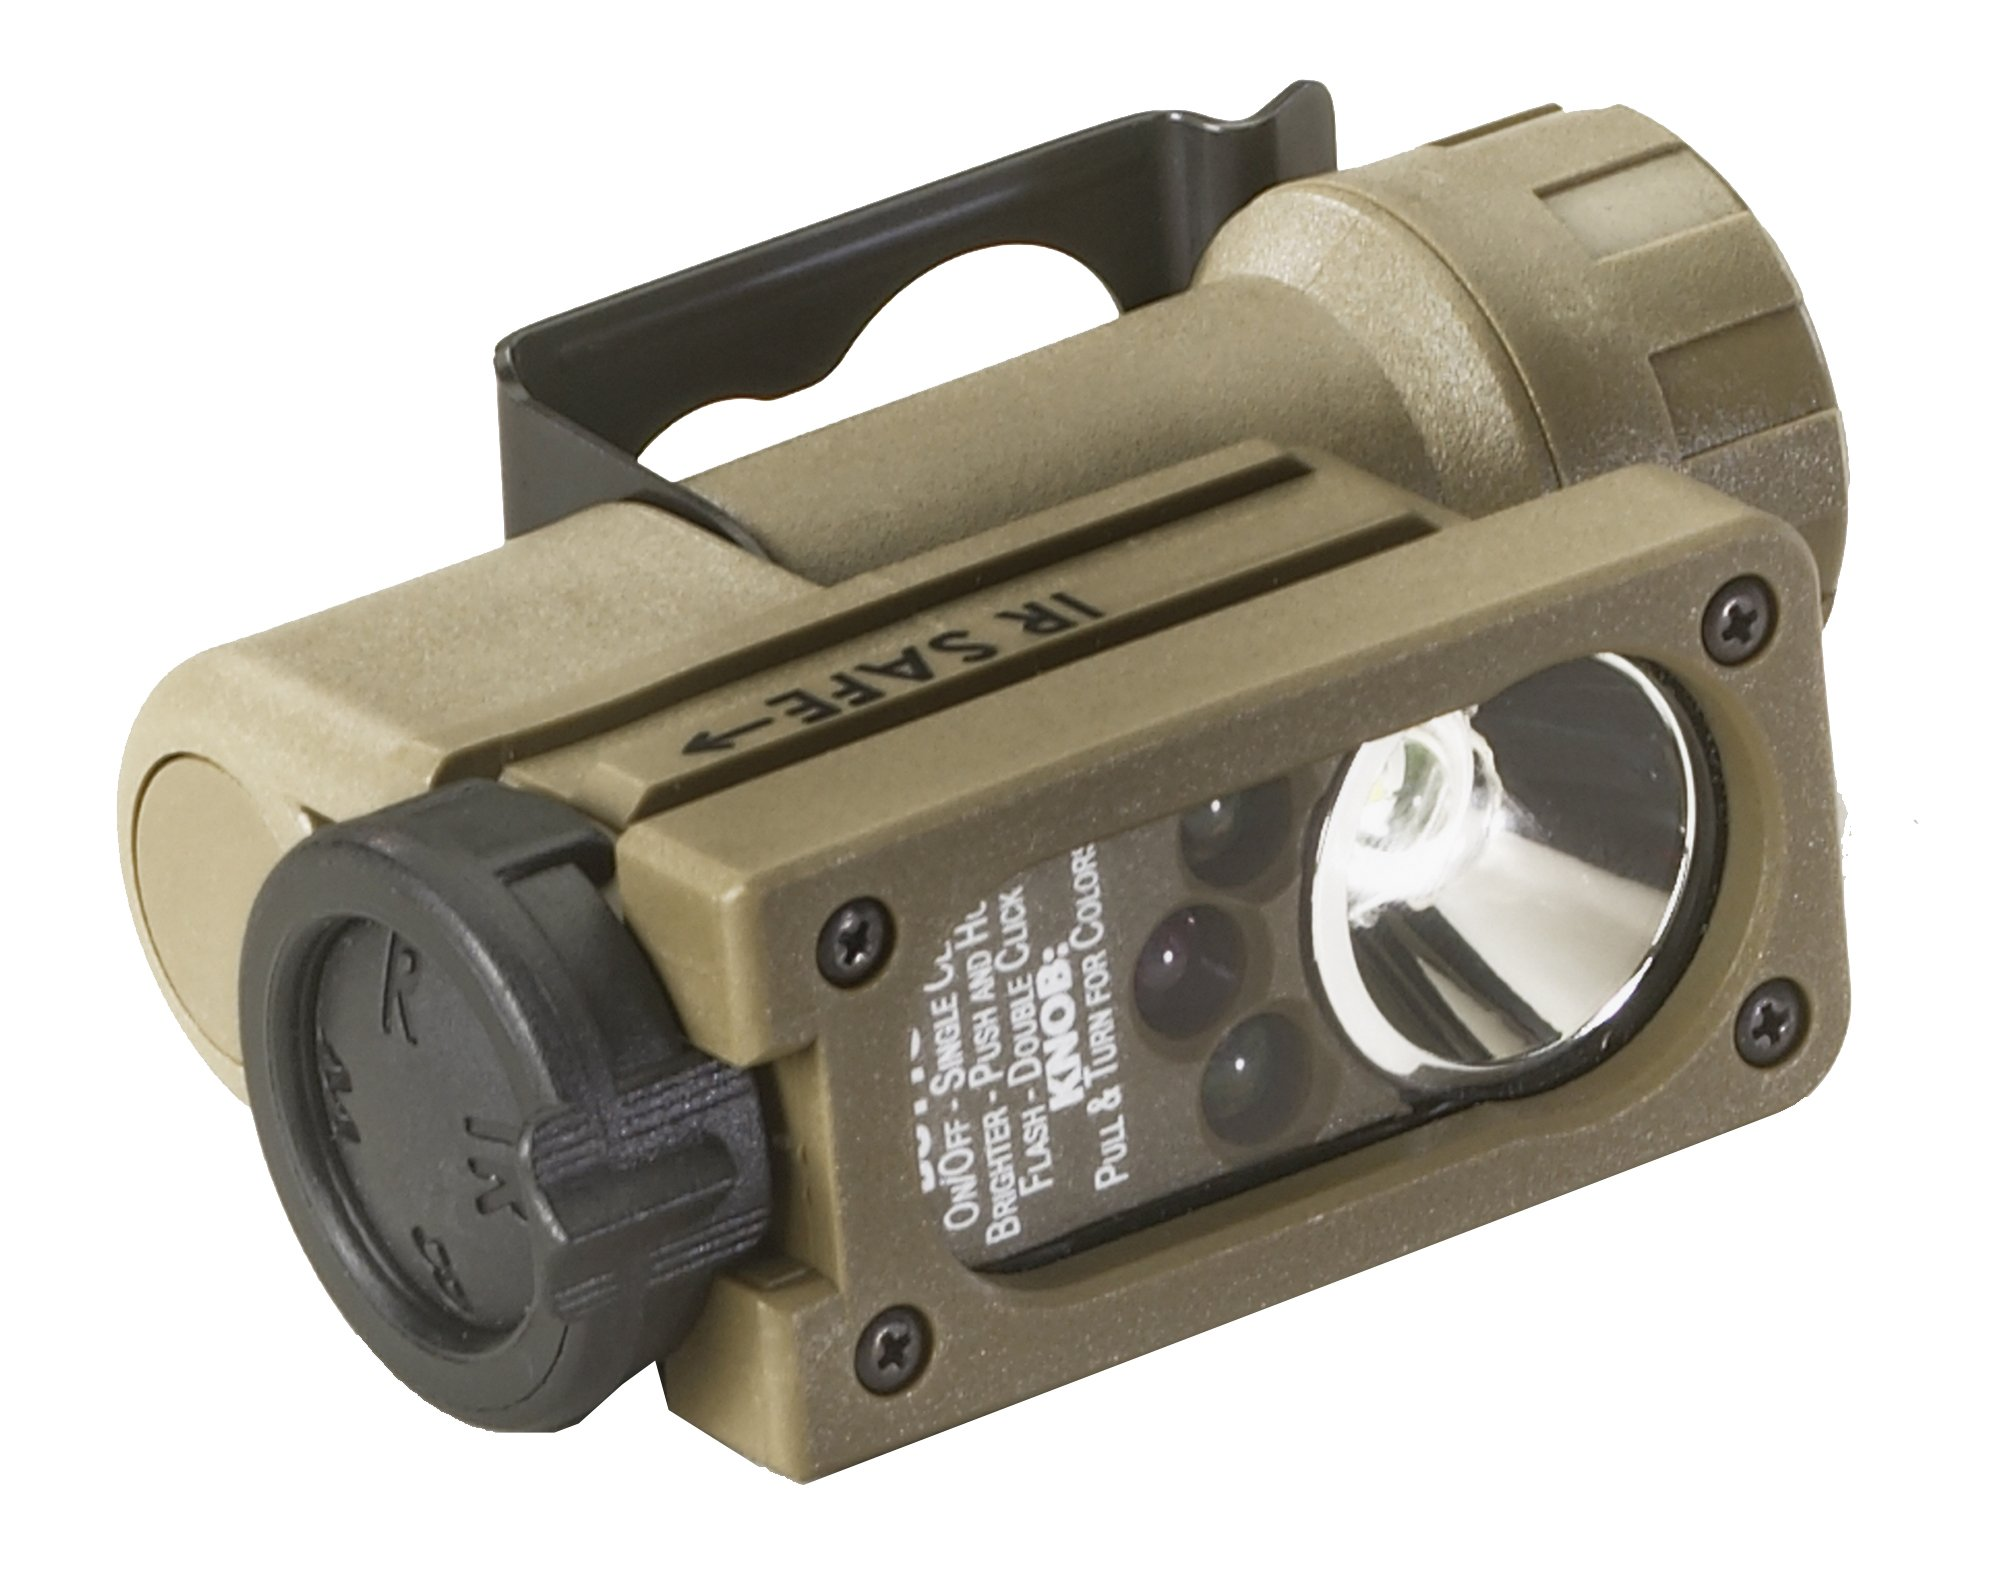 Streamlight 14104 Sidewinder Compact Tactical Flashlight with C4 LEDs and CR123A Lithium Battery, Coyote - 55 Lumens by Streamlight